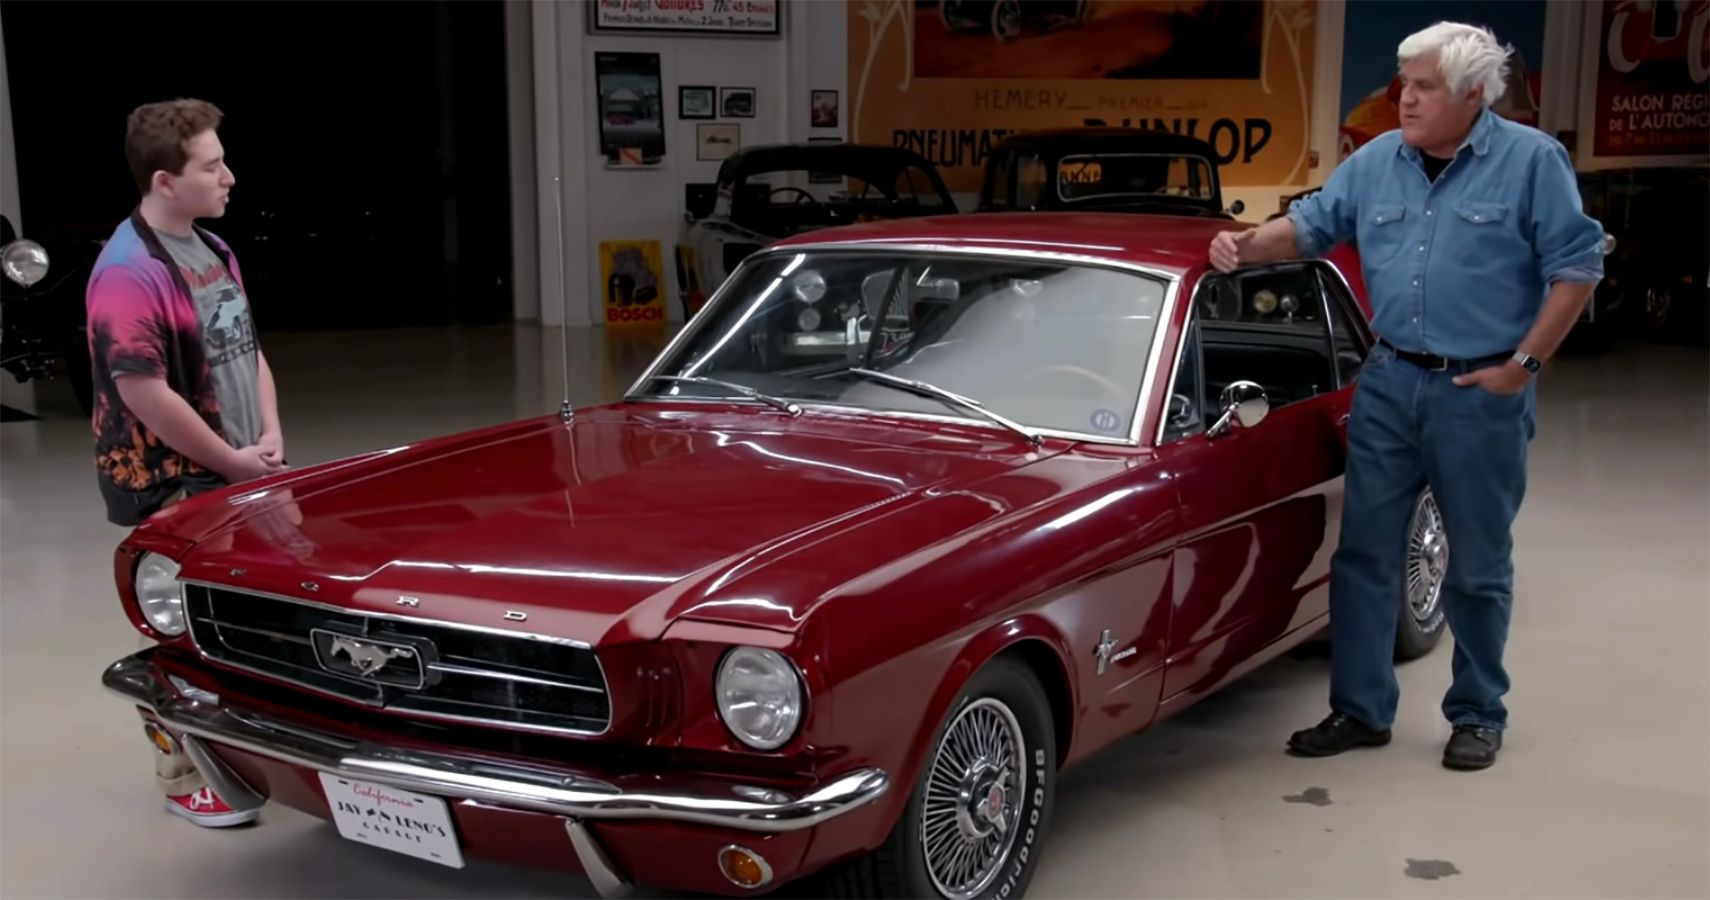 Meet Jack, The 16-Year-Old Classic Mustang Owner Who Caught Jay Leno's Attention